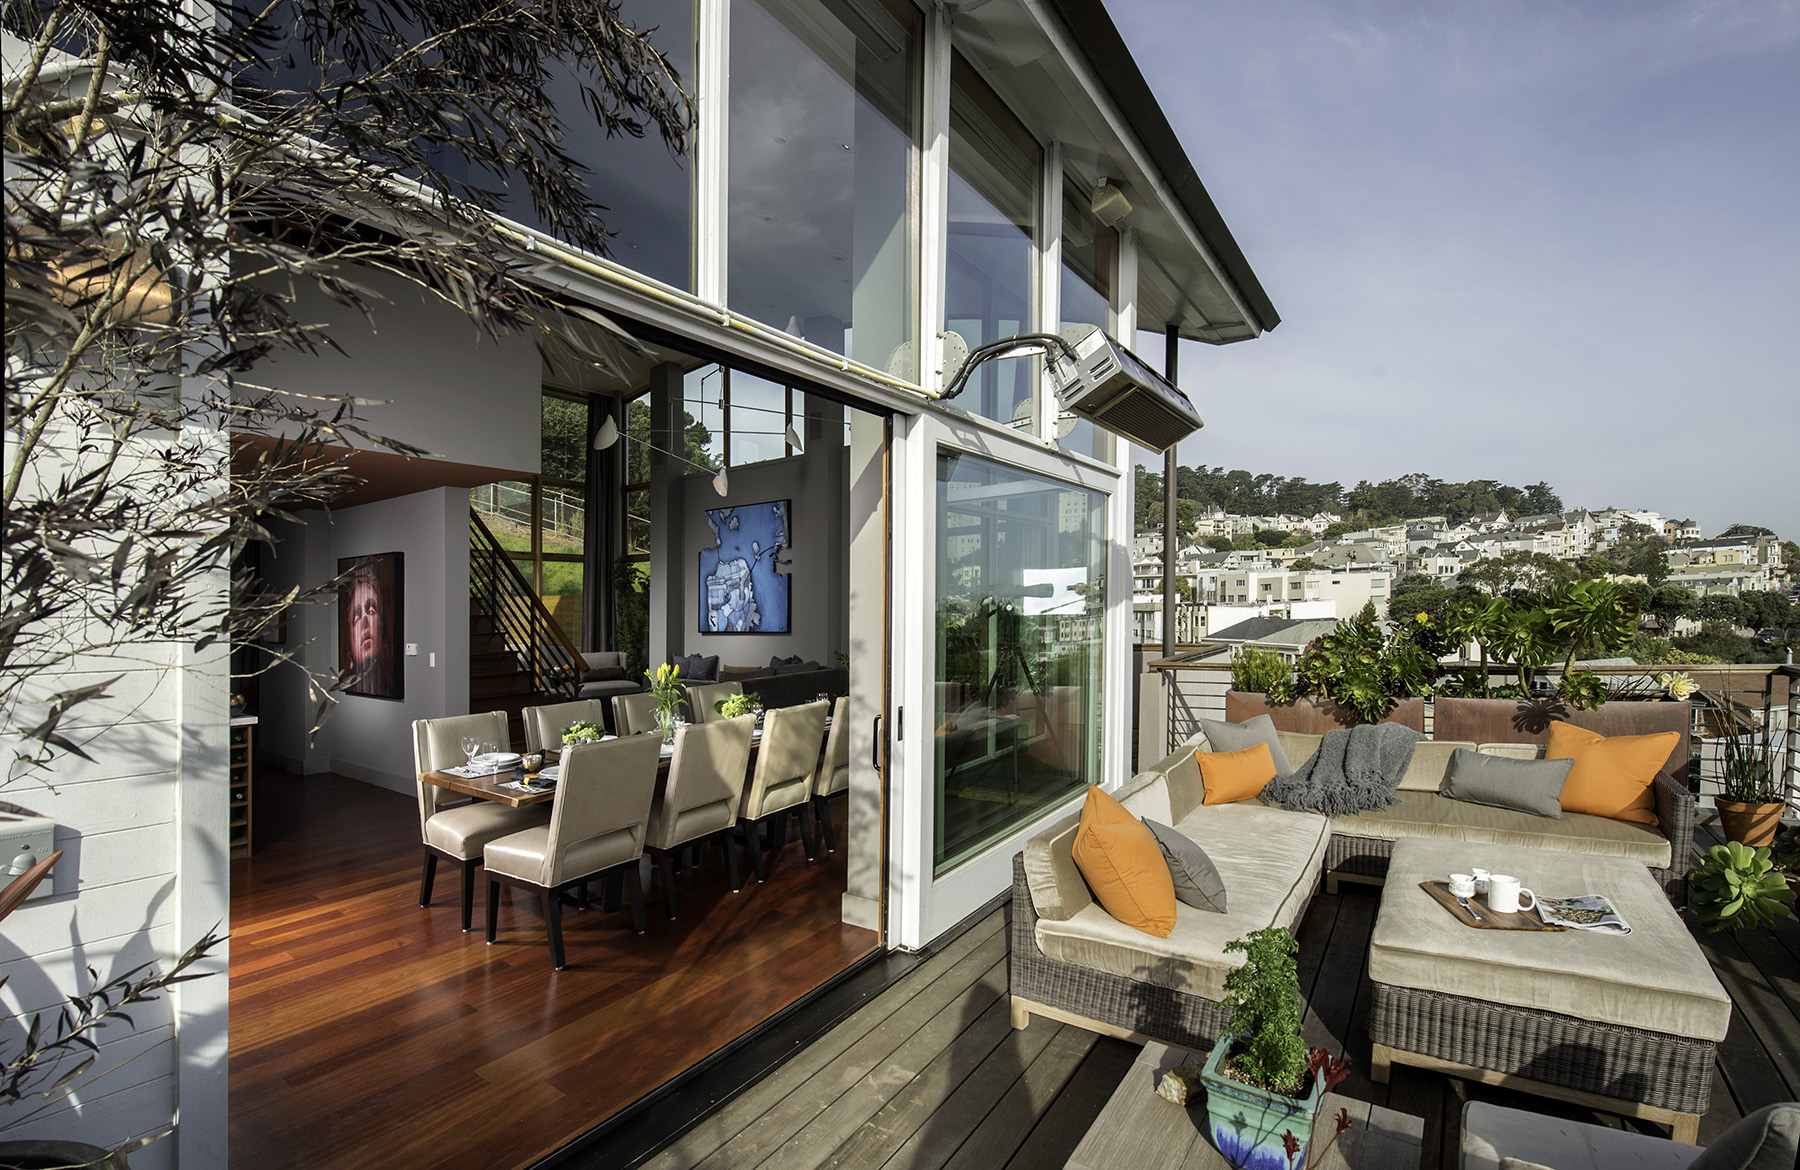 Patio featuring interior design by Fredman Design Group